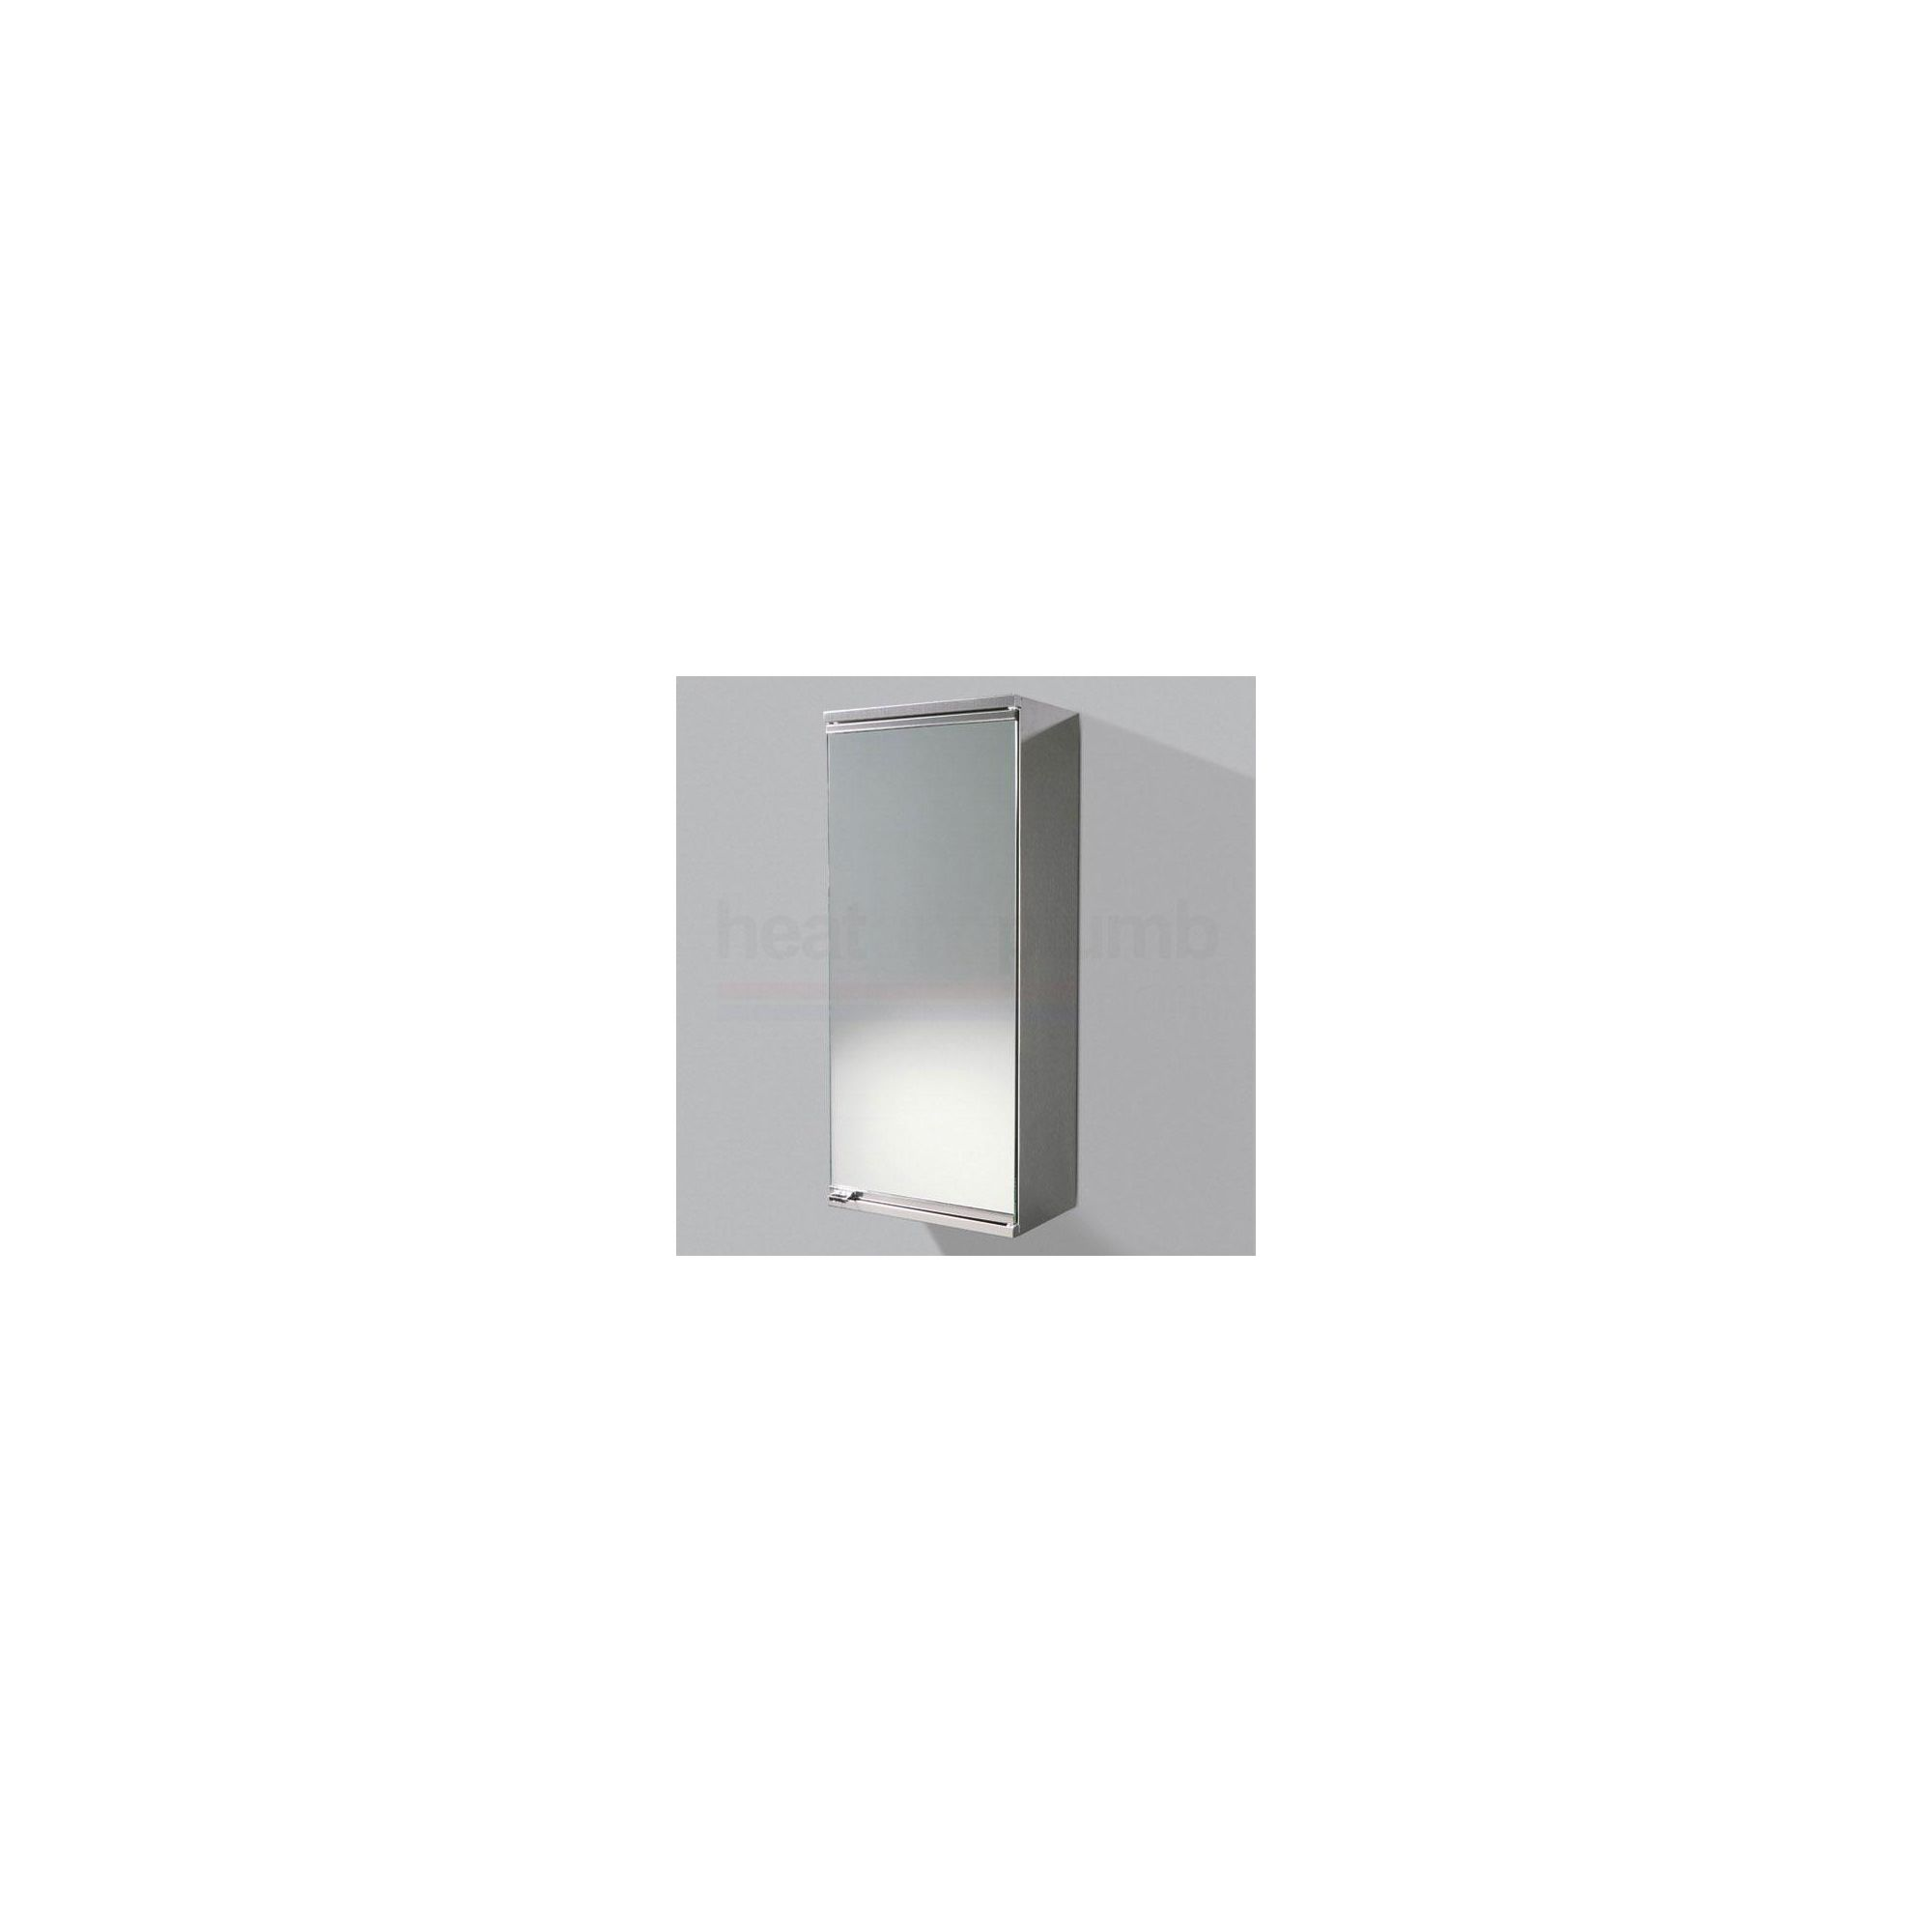 HiB Chandra Stainless Steel Bathroom Cabinet 695mm High x 300mm Wide x 185mm Deep